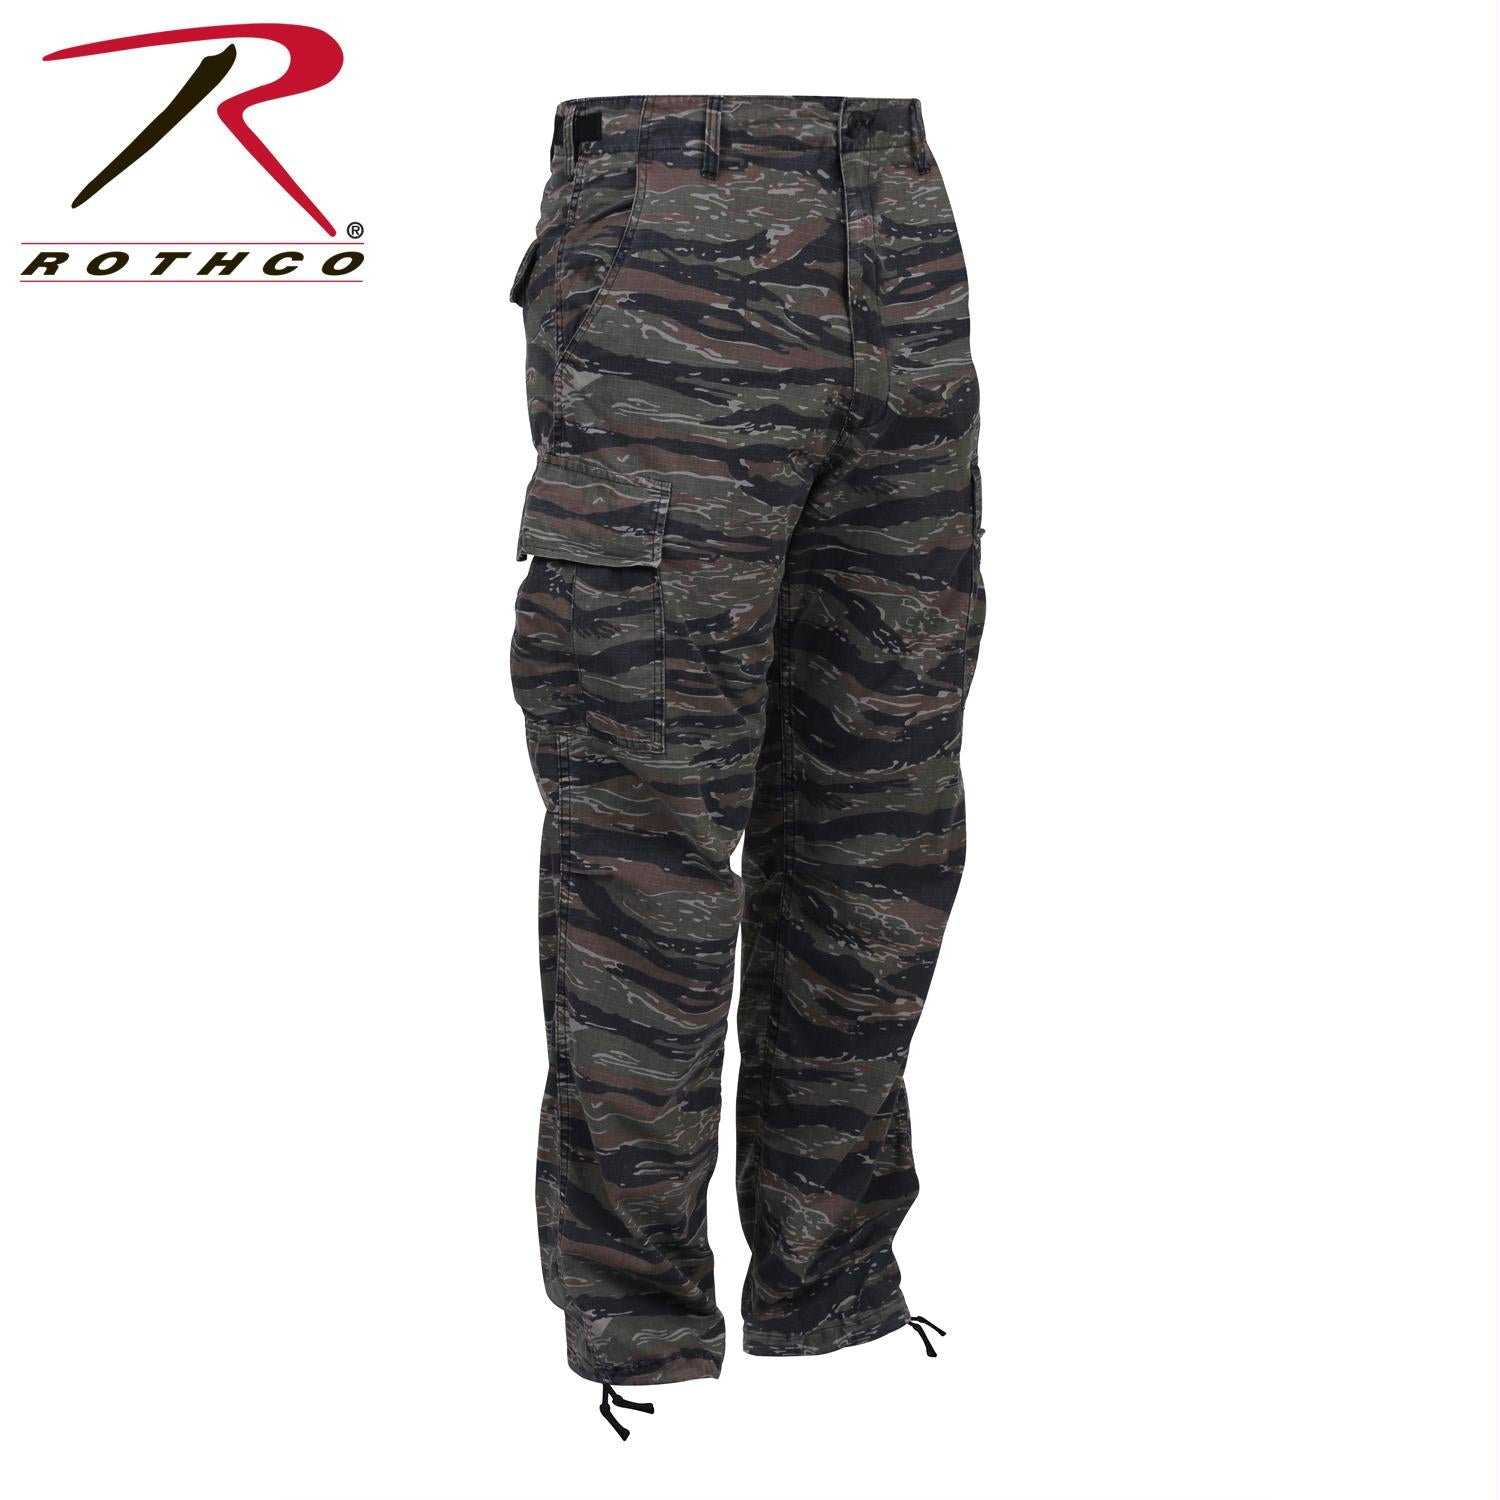 Rothco Camo Tactical BDU Pants - Tiger Stripe Camo / XL